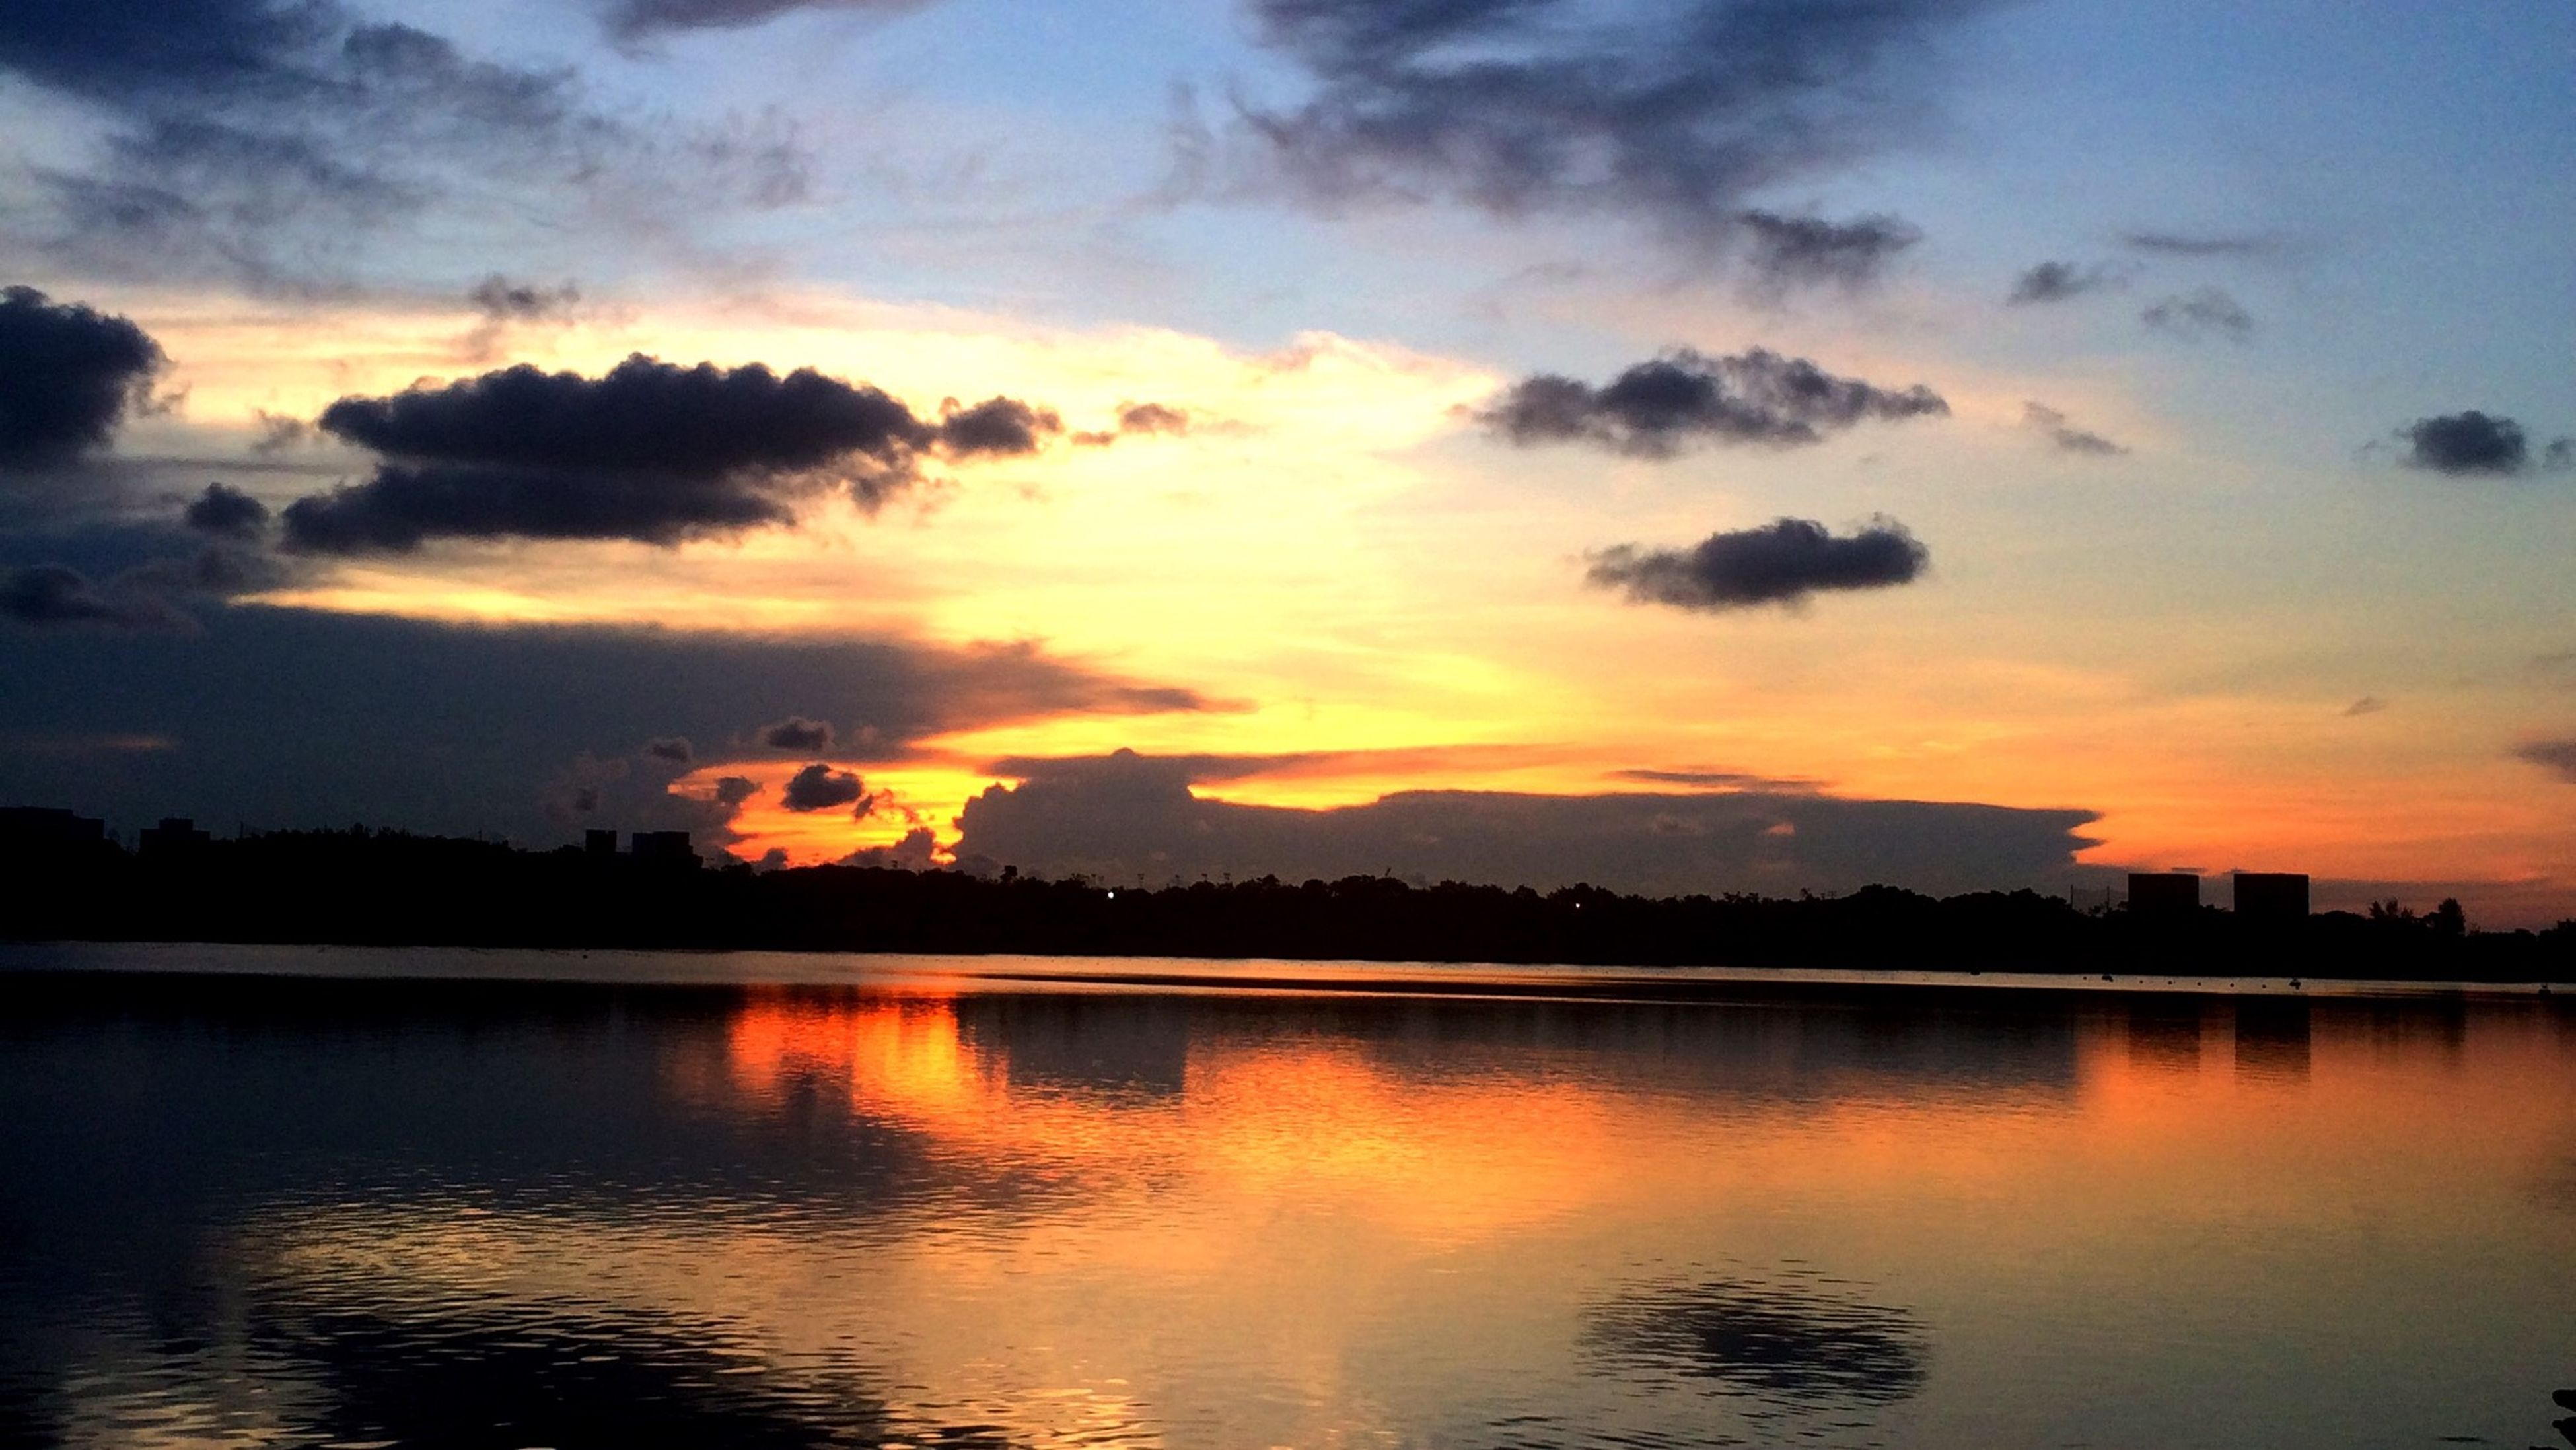 sunset, water, sky, reflection, scenics, tranquil scene, lake, waterfront, tranquility, beauty in nature, orange color, cloud - sky, silhouette, idyllic, nature, cloud, river, dramatic sky, outdoors, mountain